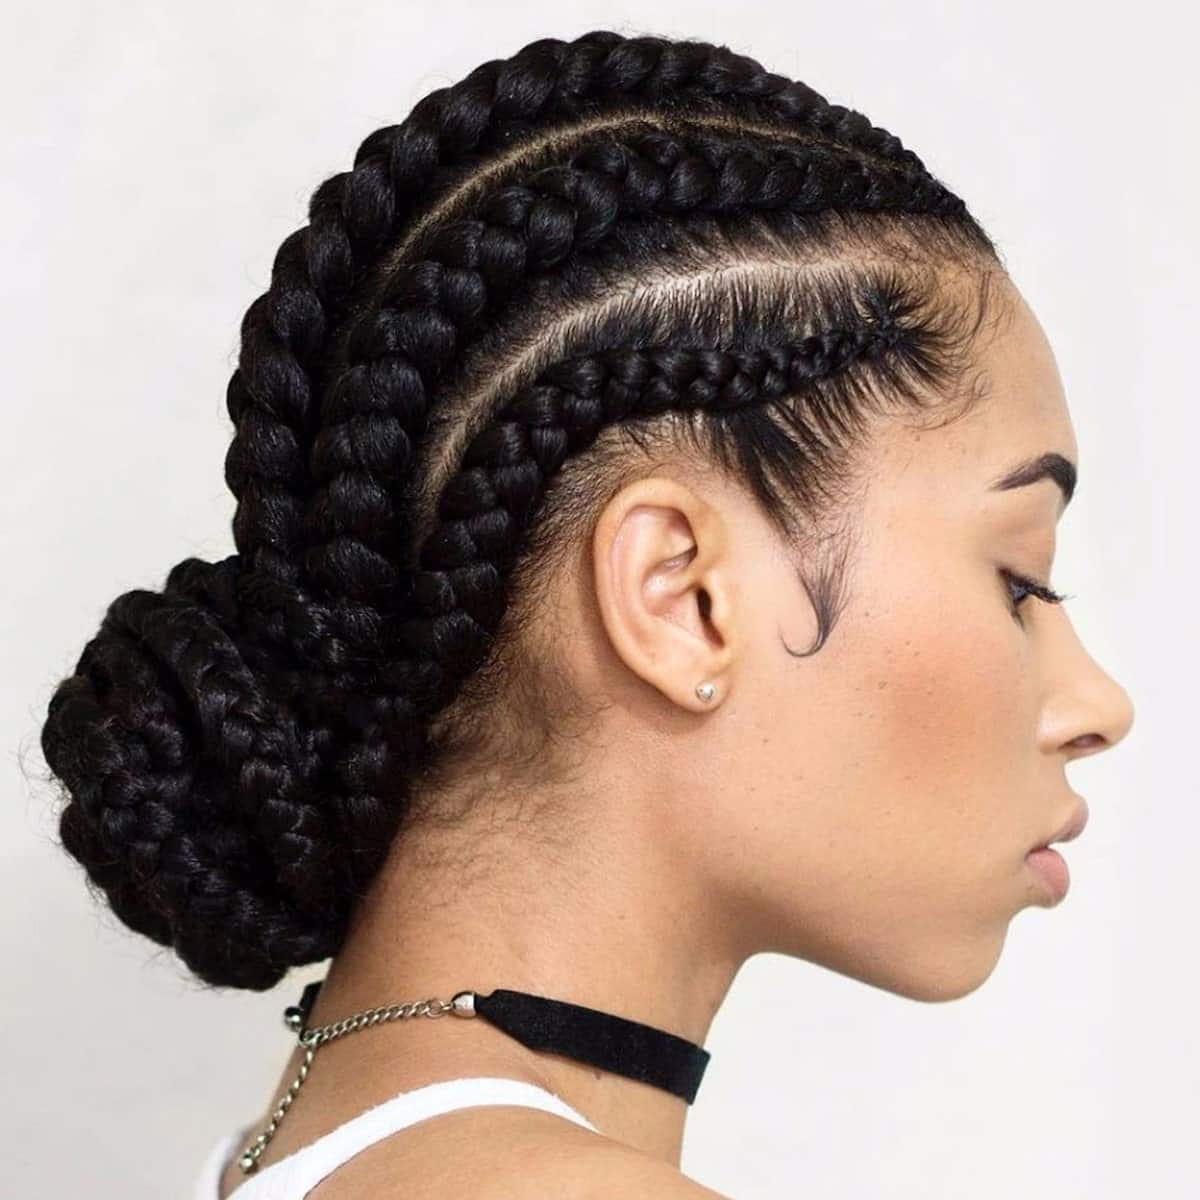 Latest Nigerian cornrow hairstyles Tukocoke